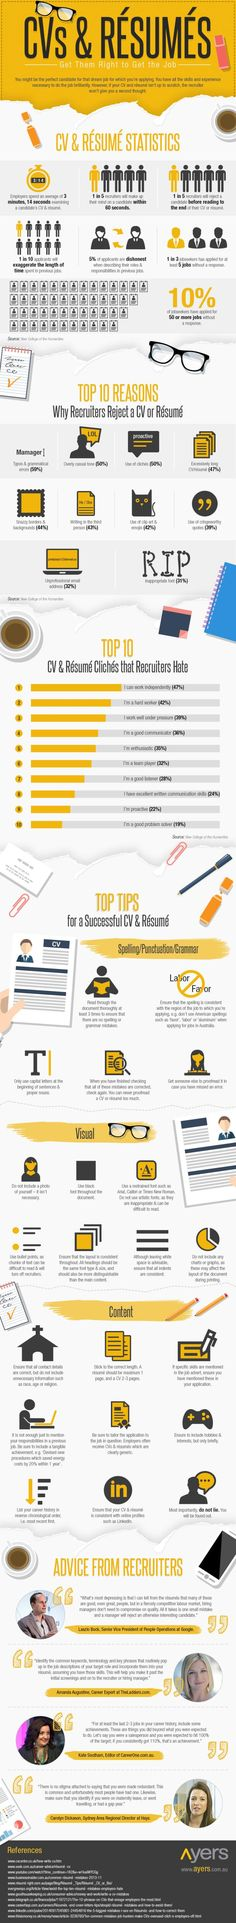 how to make a resume infographic by textycafe http\/\/textycafe - how to start a resume